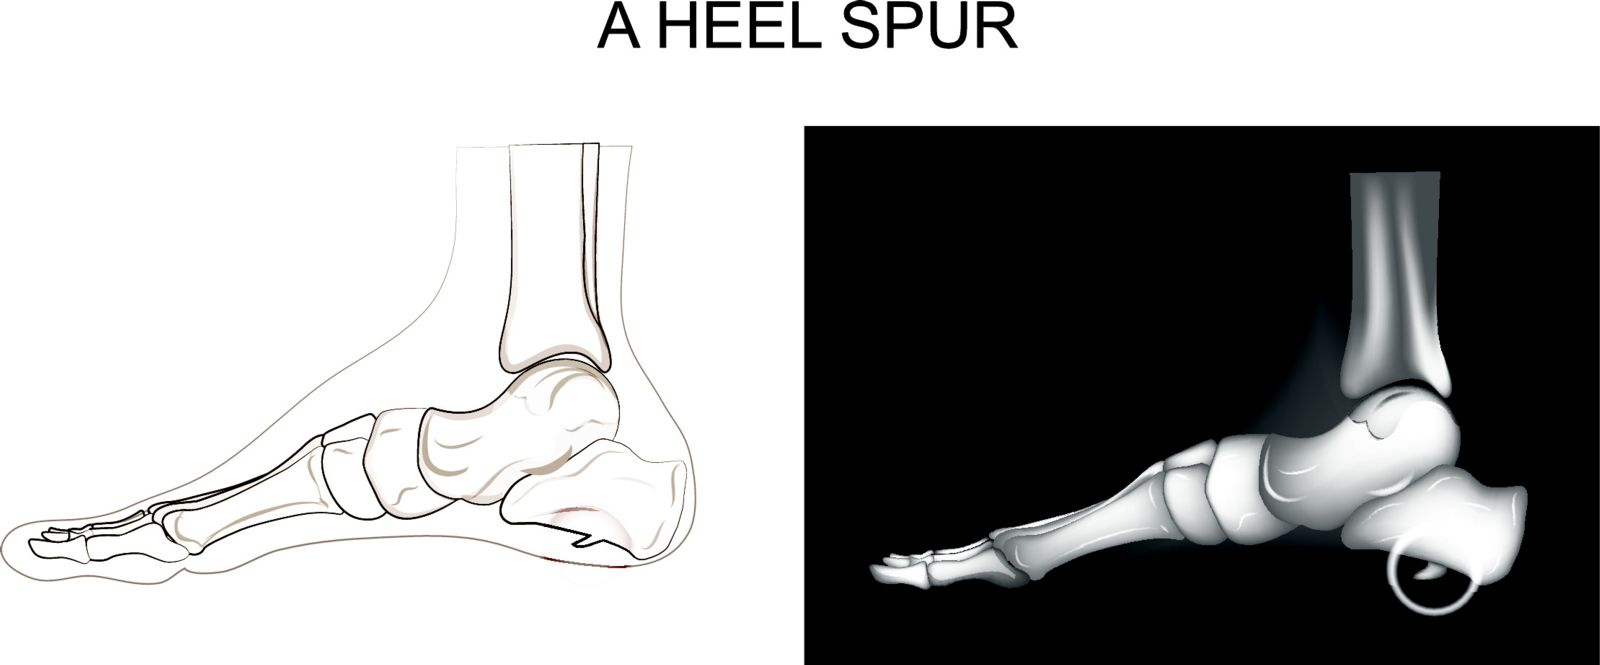 Houston podiatrist treats heel spur pain